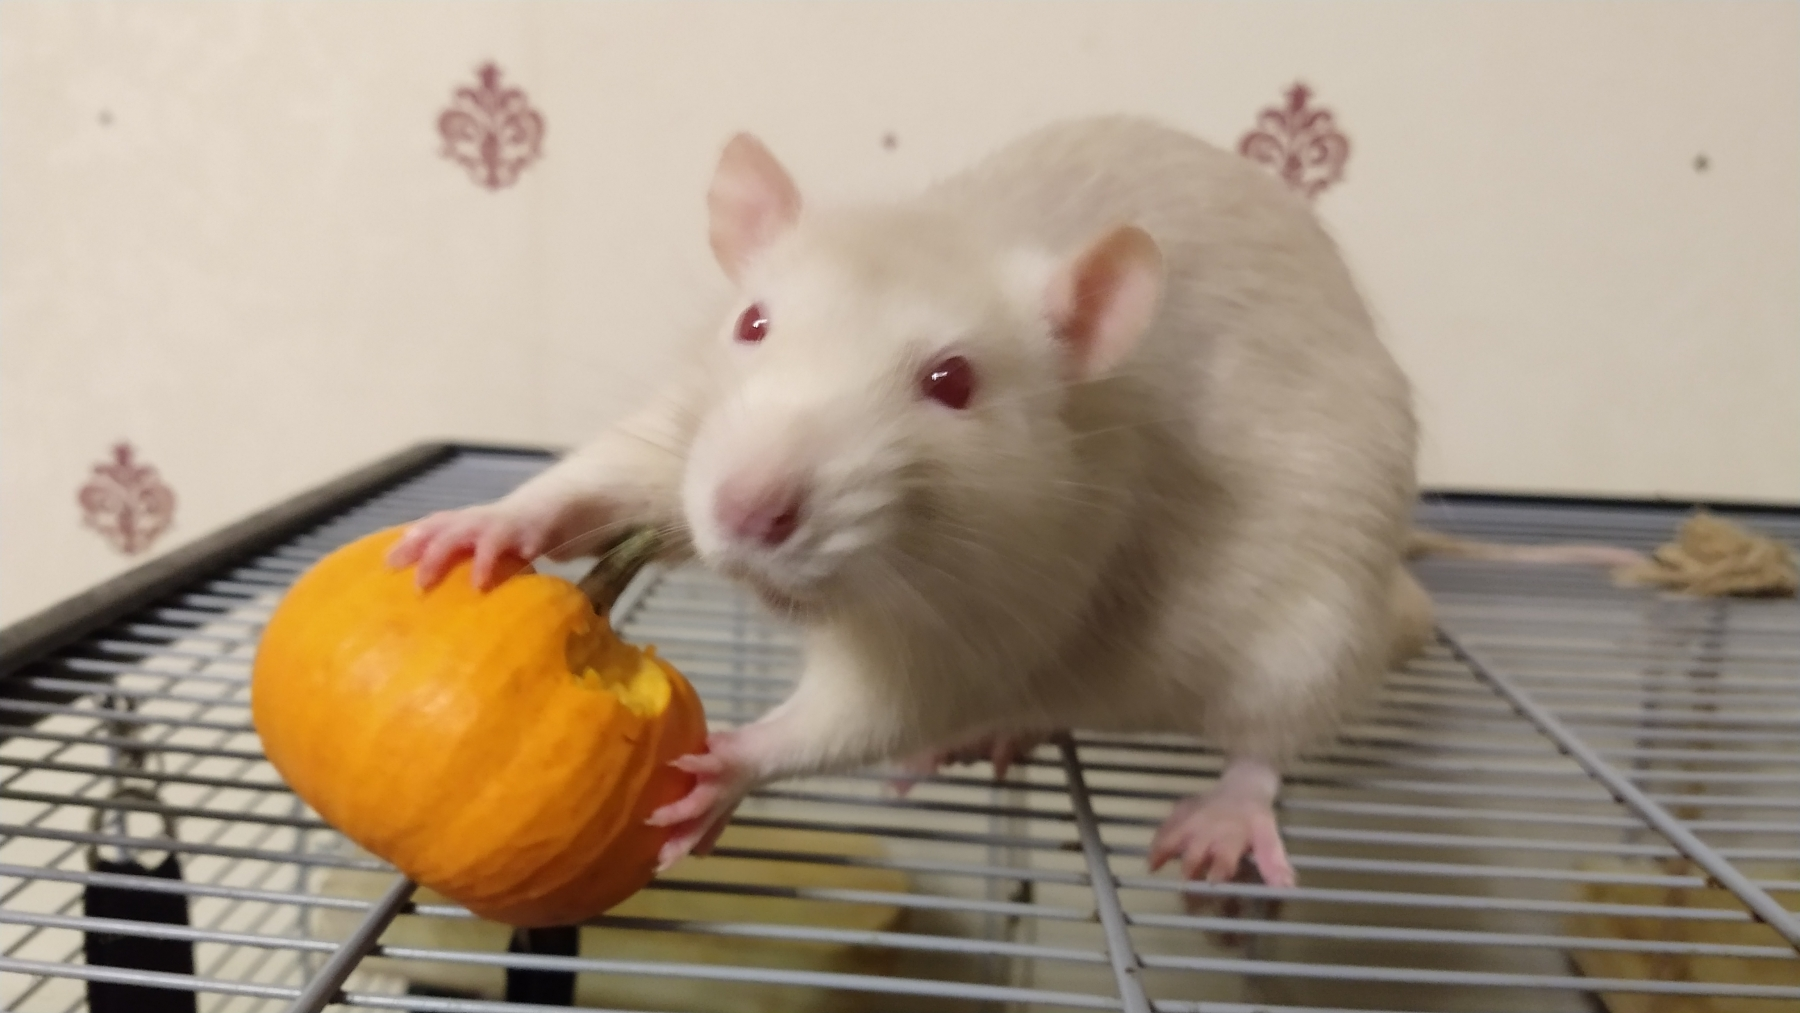 Derek and his pumpkin, Oct 2019.